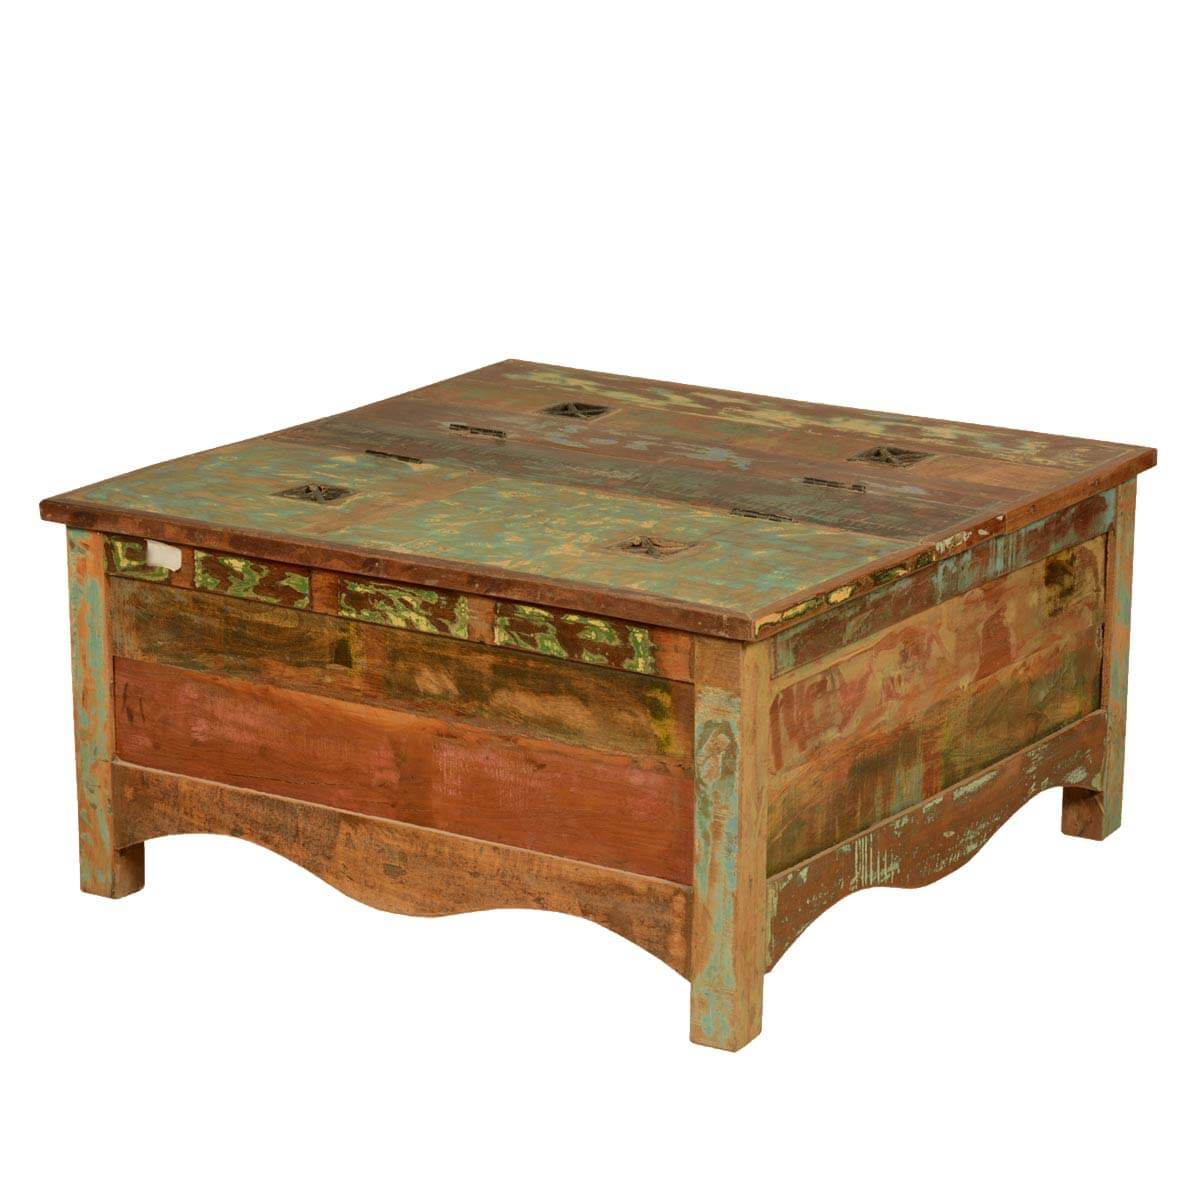 Rustic reclaimed wood 35 5 square double top coffee table chest Wood square coffee tables